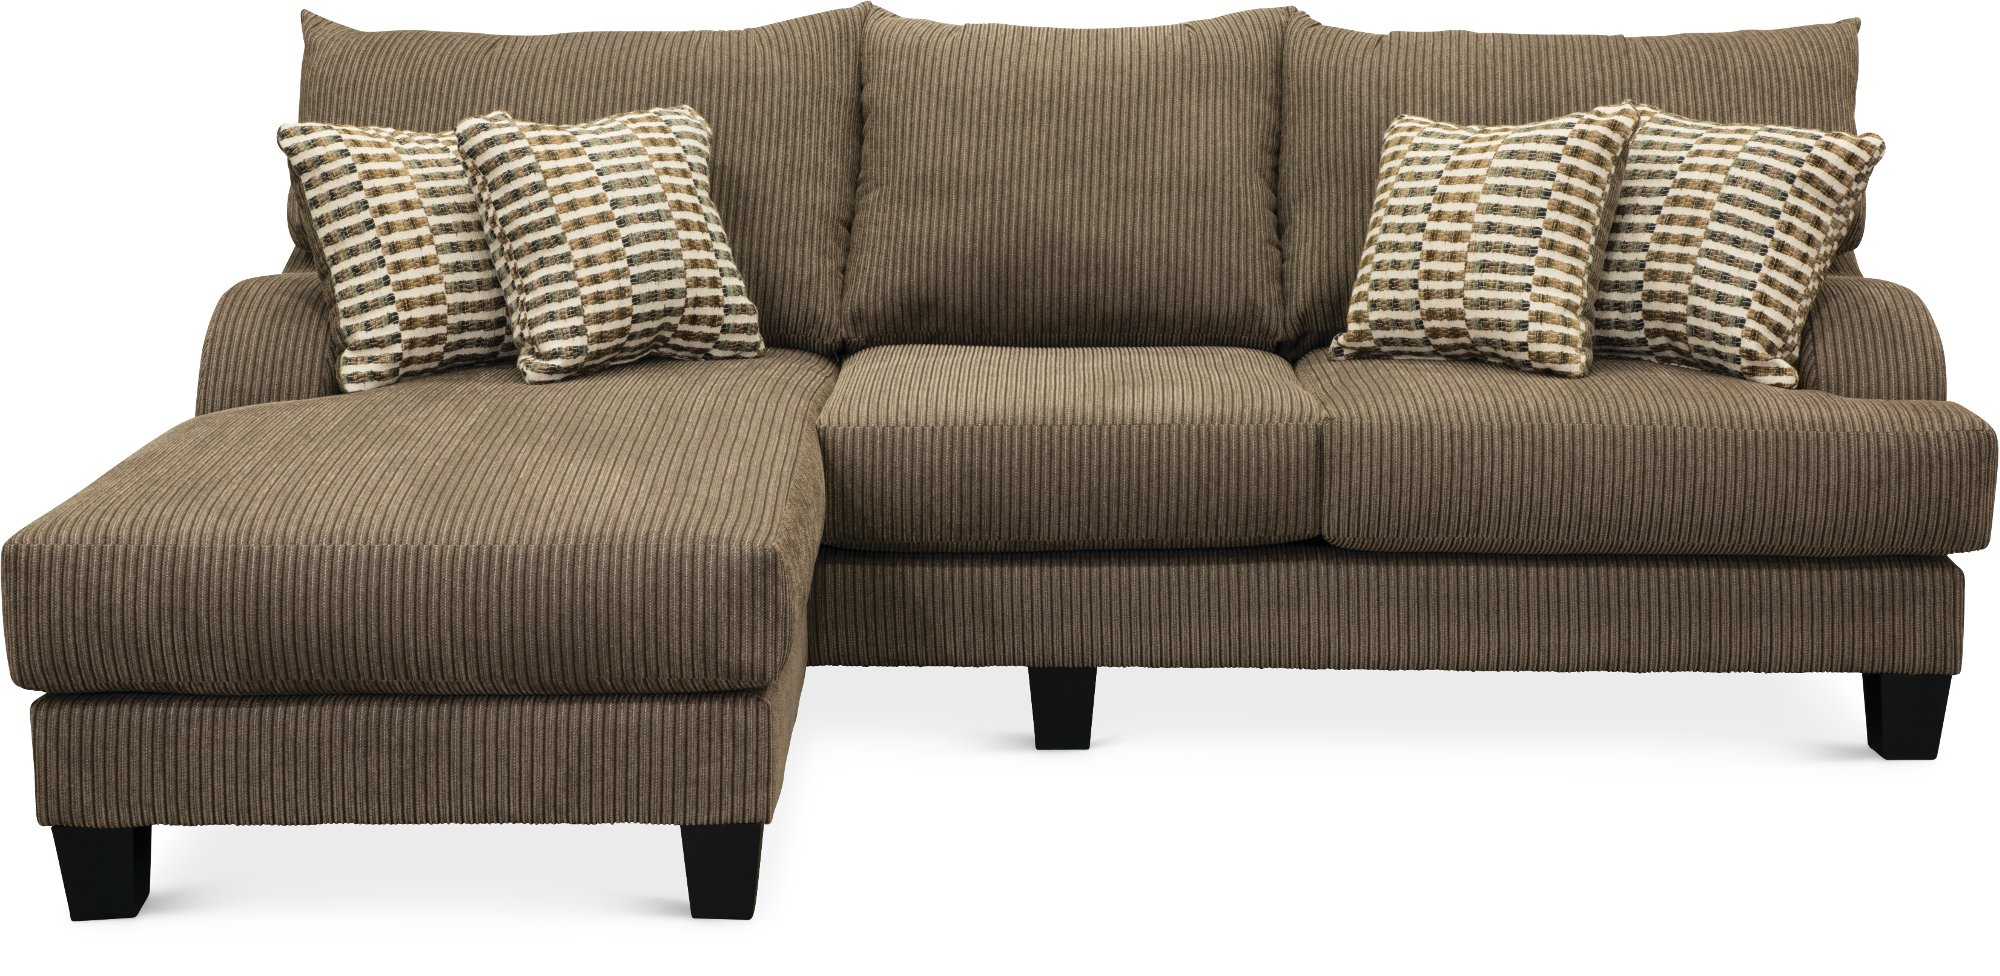 leather unique living sectional a deep sofas for sofa rc willey wayfair room ideas cheap sectiona furniture reclining sectionals